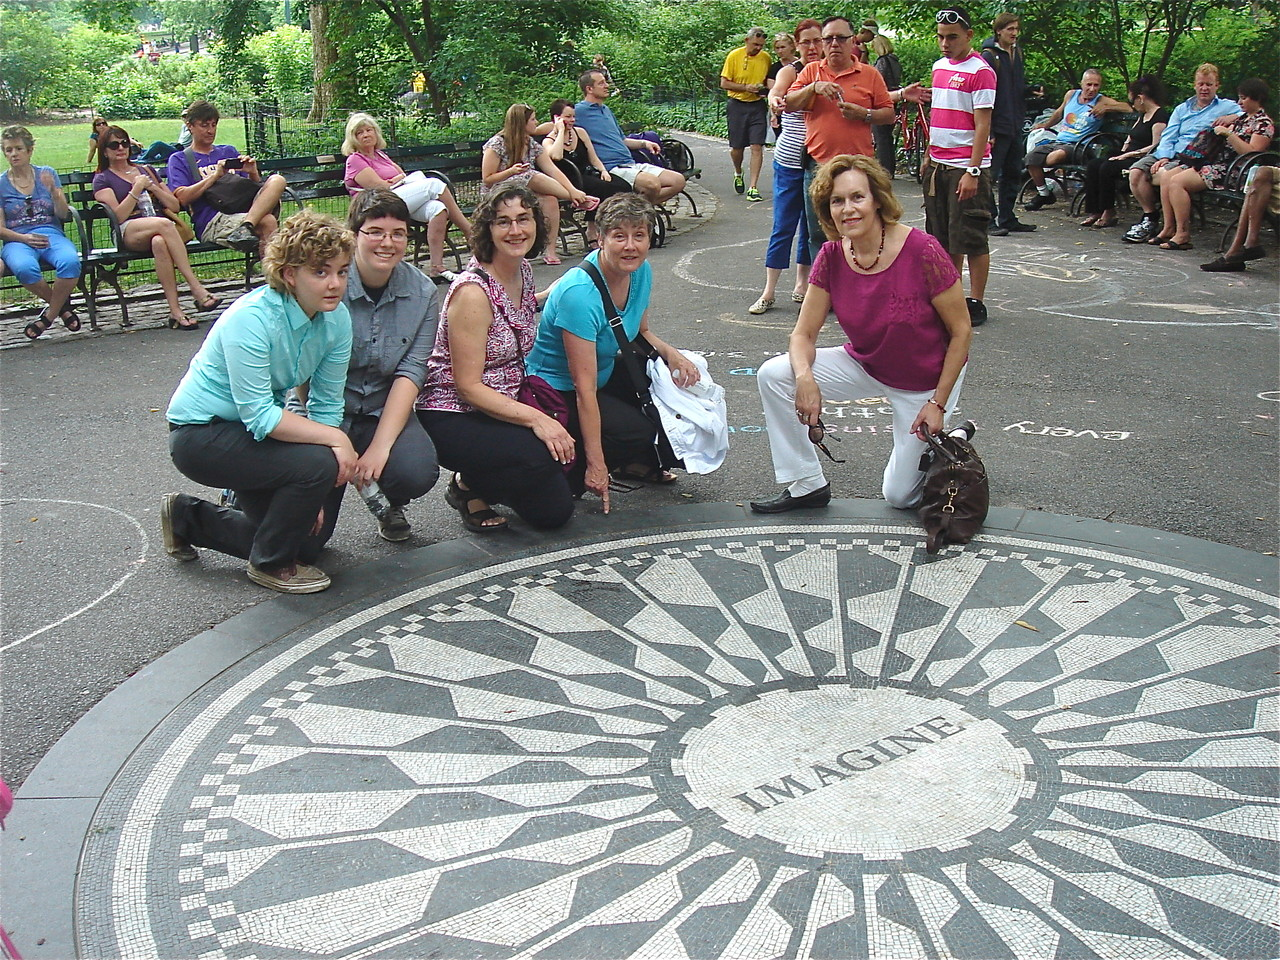 Kathleen, Emilea, Ann, Cindy, & Lorraine Gudas Strawberry Fields, NYC 6-16-2013